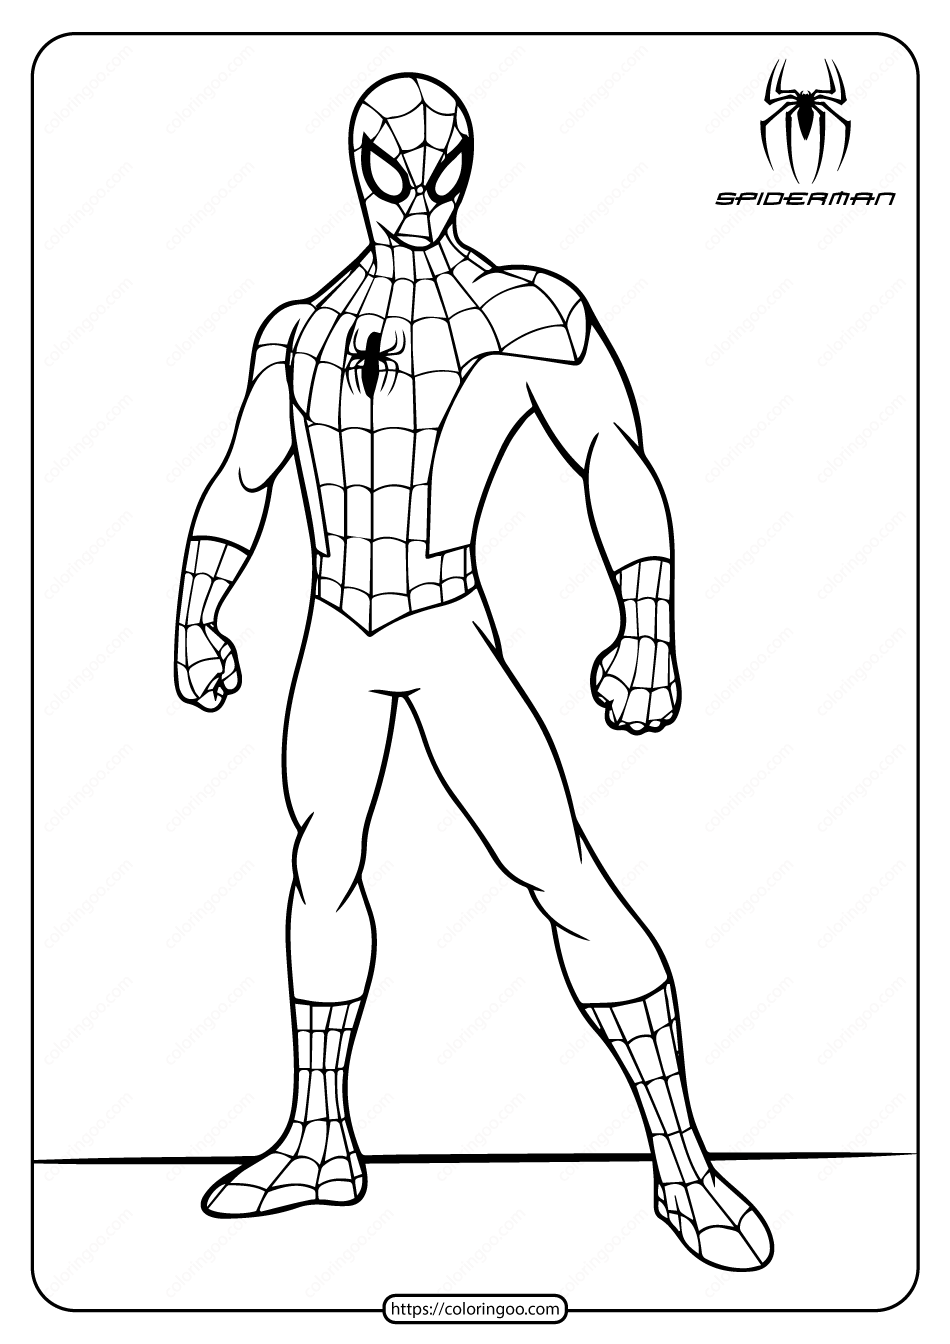 coloring spiderman color spiderman for kids spiderman kids coloring pages color spiderman coloring